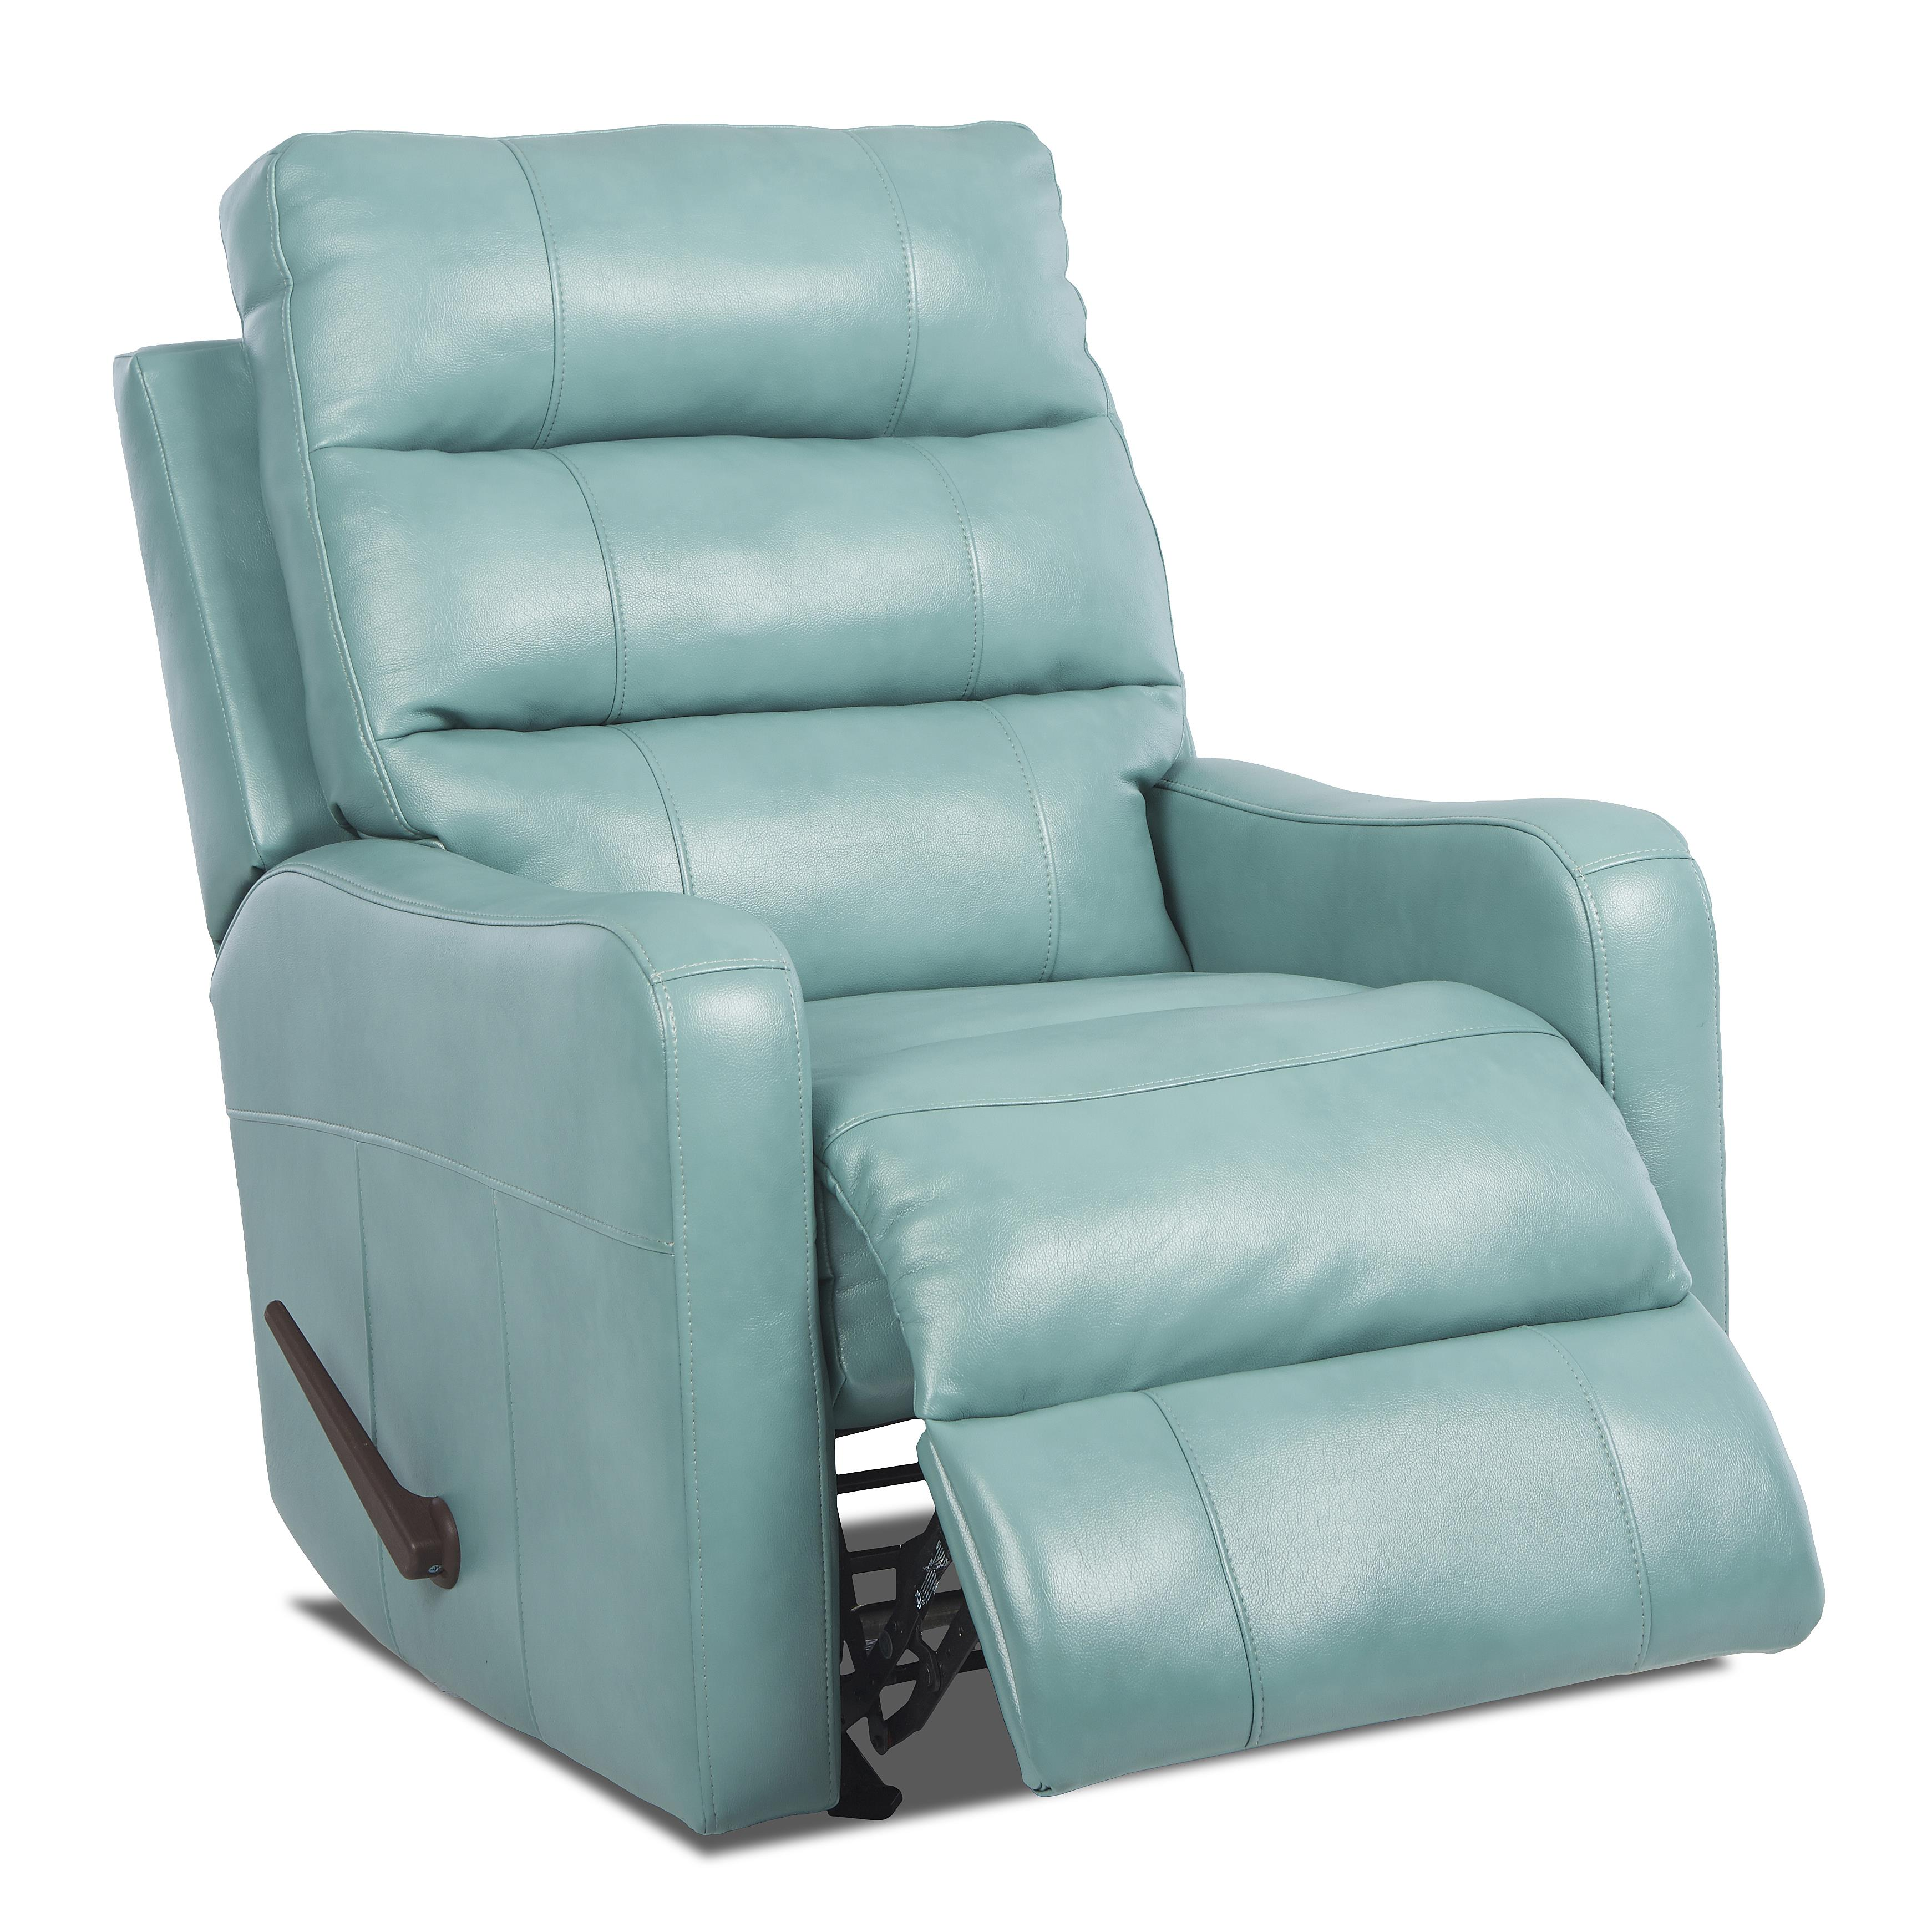 Striker contemporary swivel rocking reclining chair by klaussner wolf furniture - Stylish rocker recliner ...